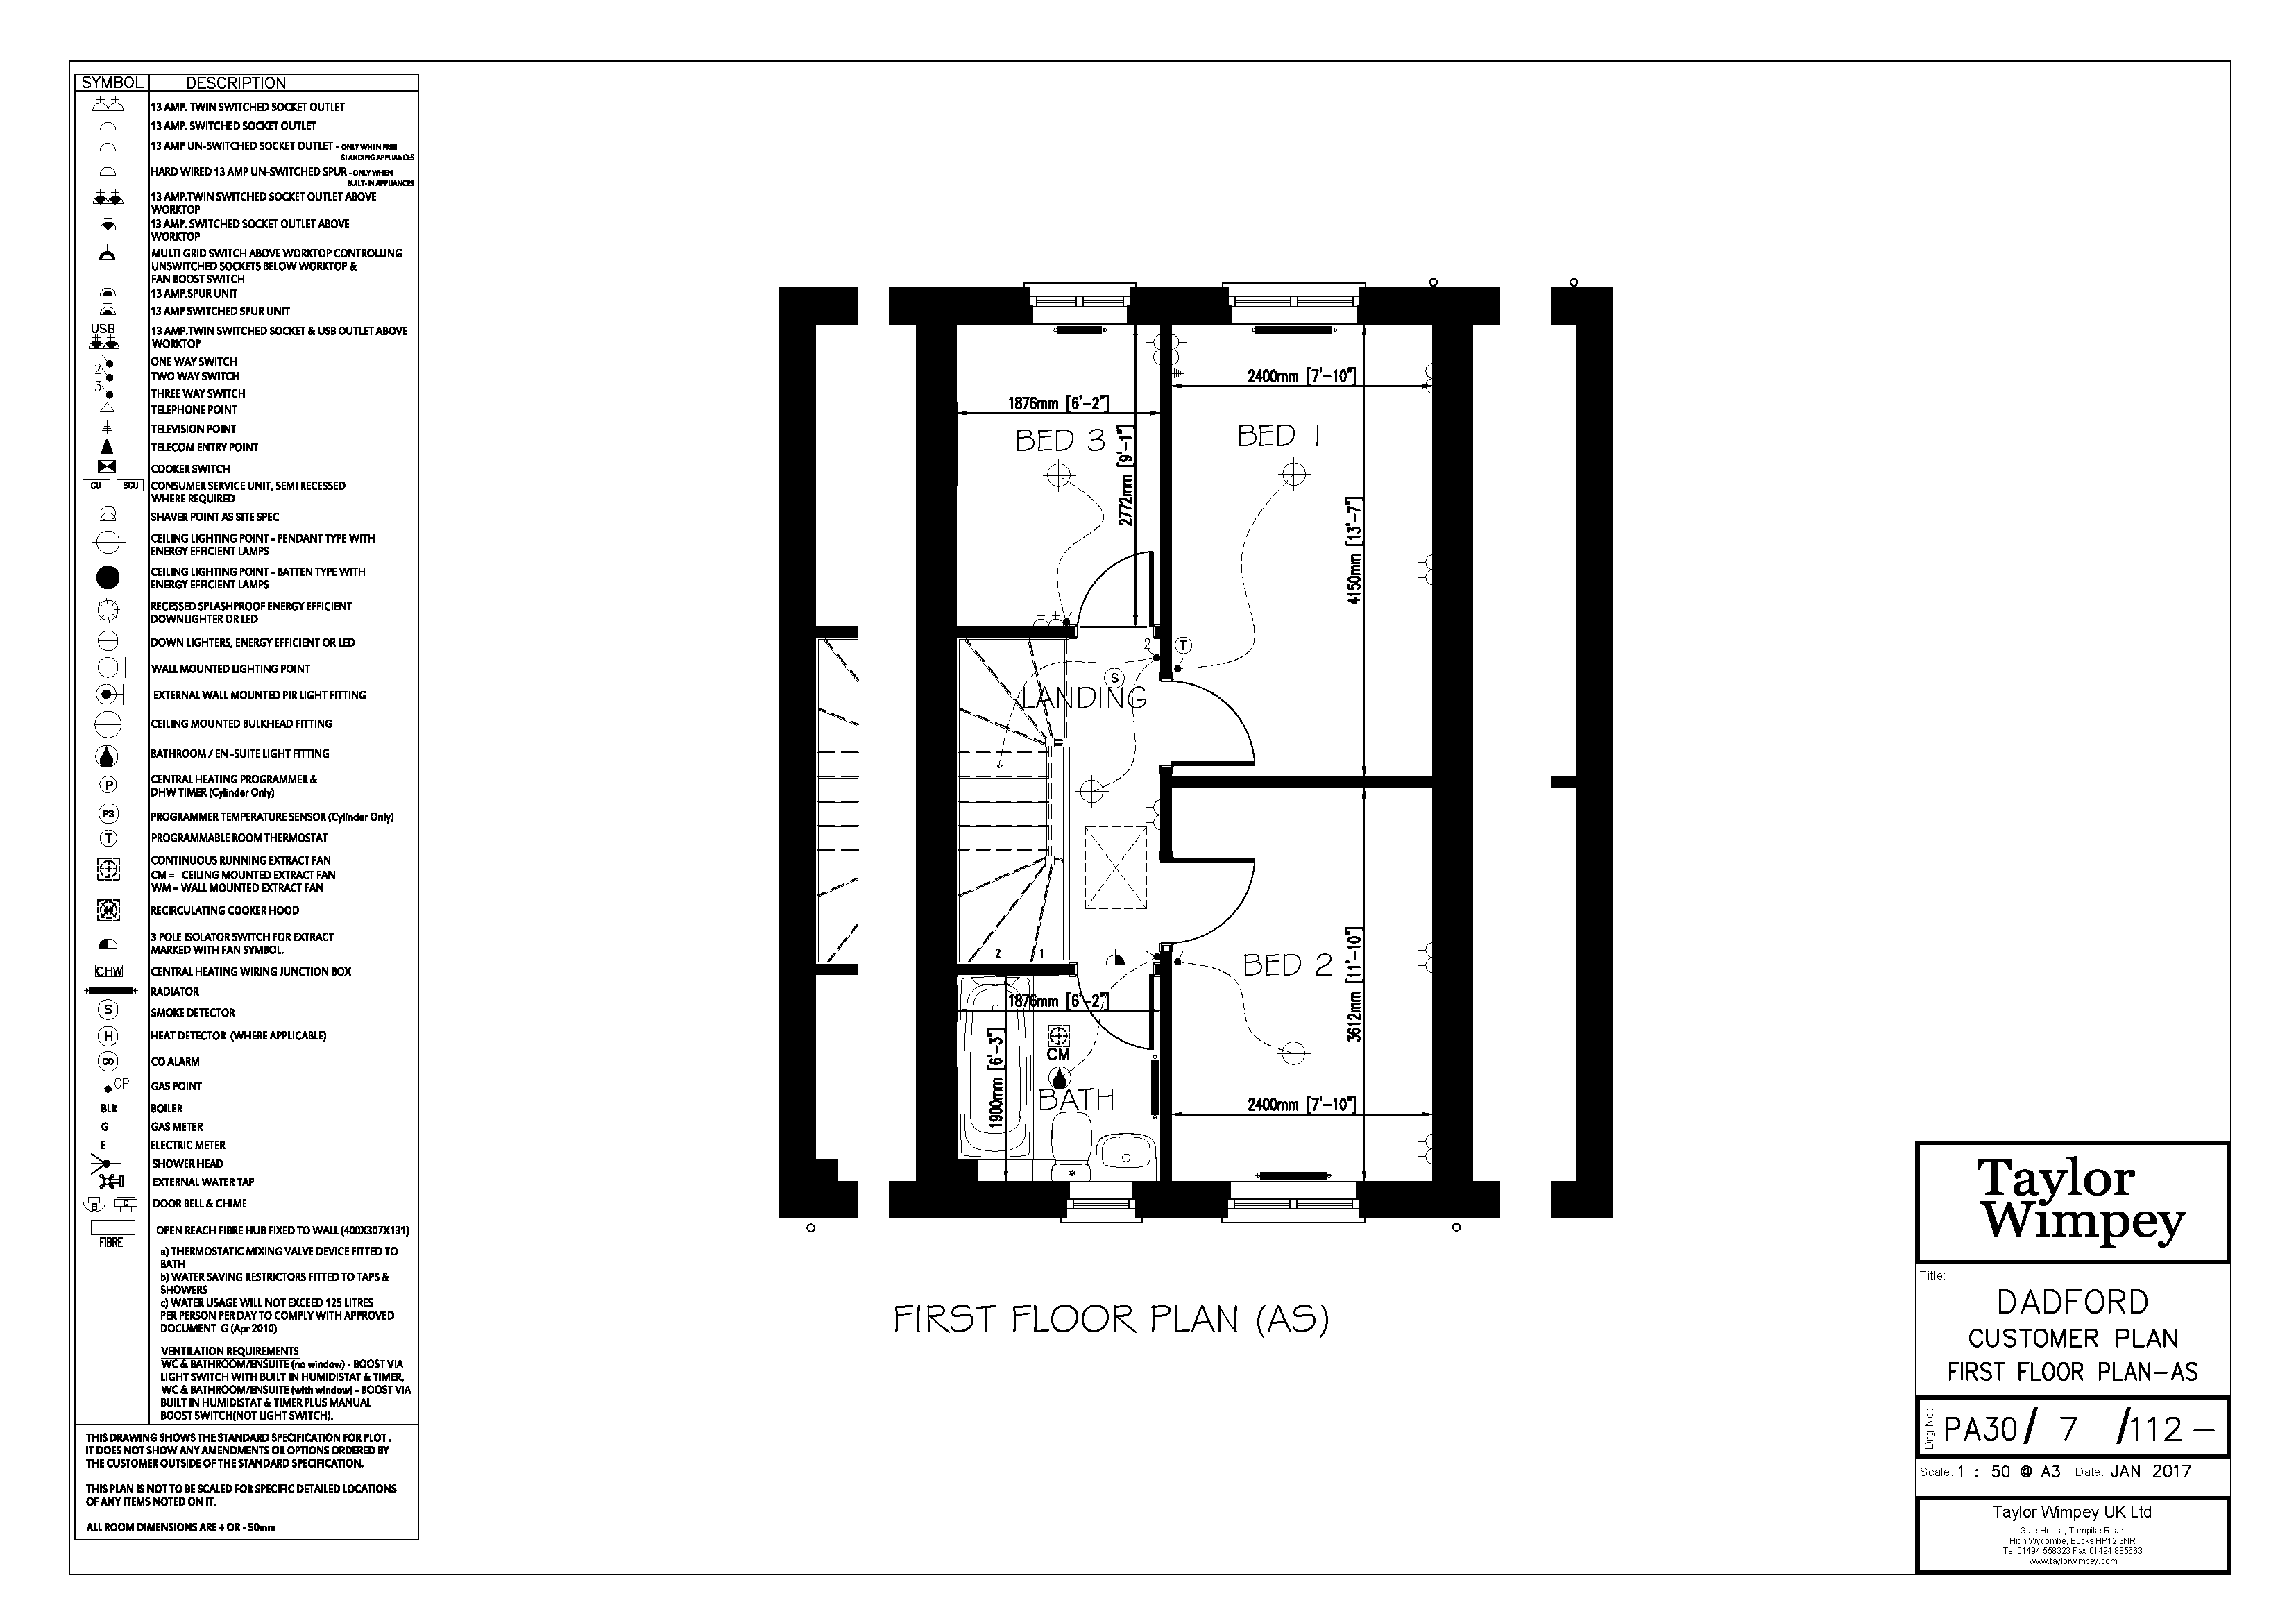 PA307202127112 FF CUSTOMER PLAN AS PA30 DADFORD FIRST FLOOR PLAN AS A3 rev